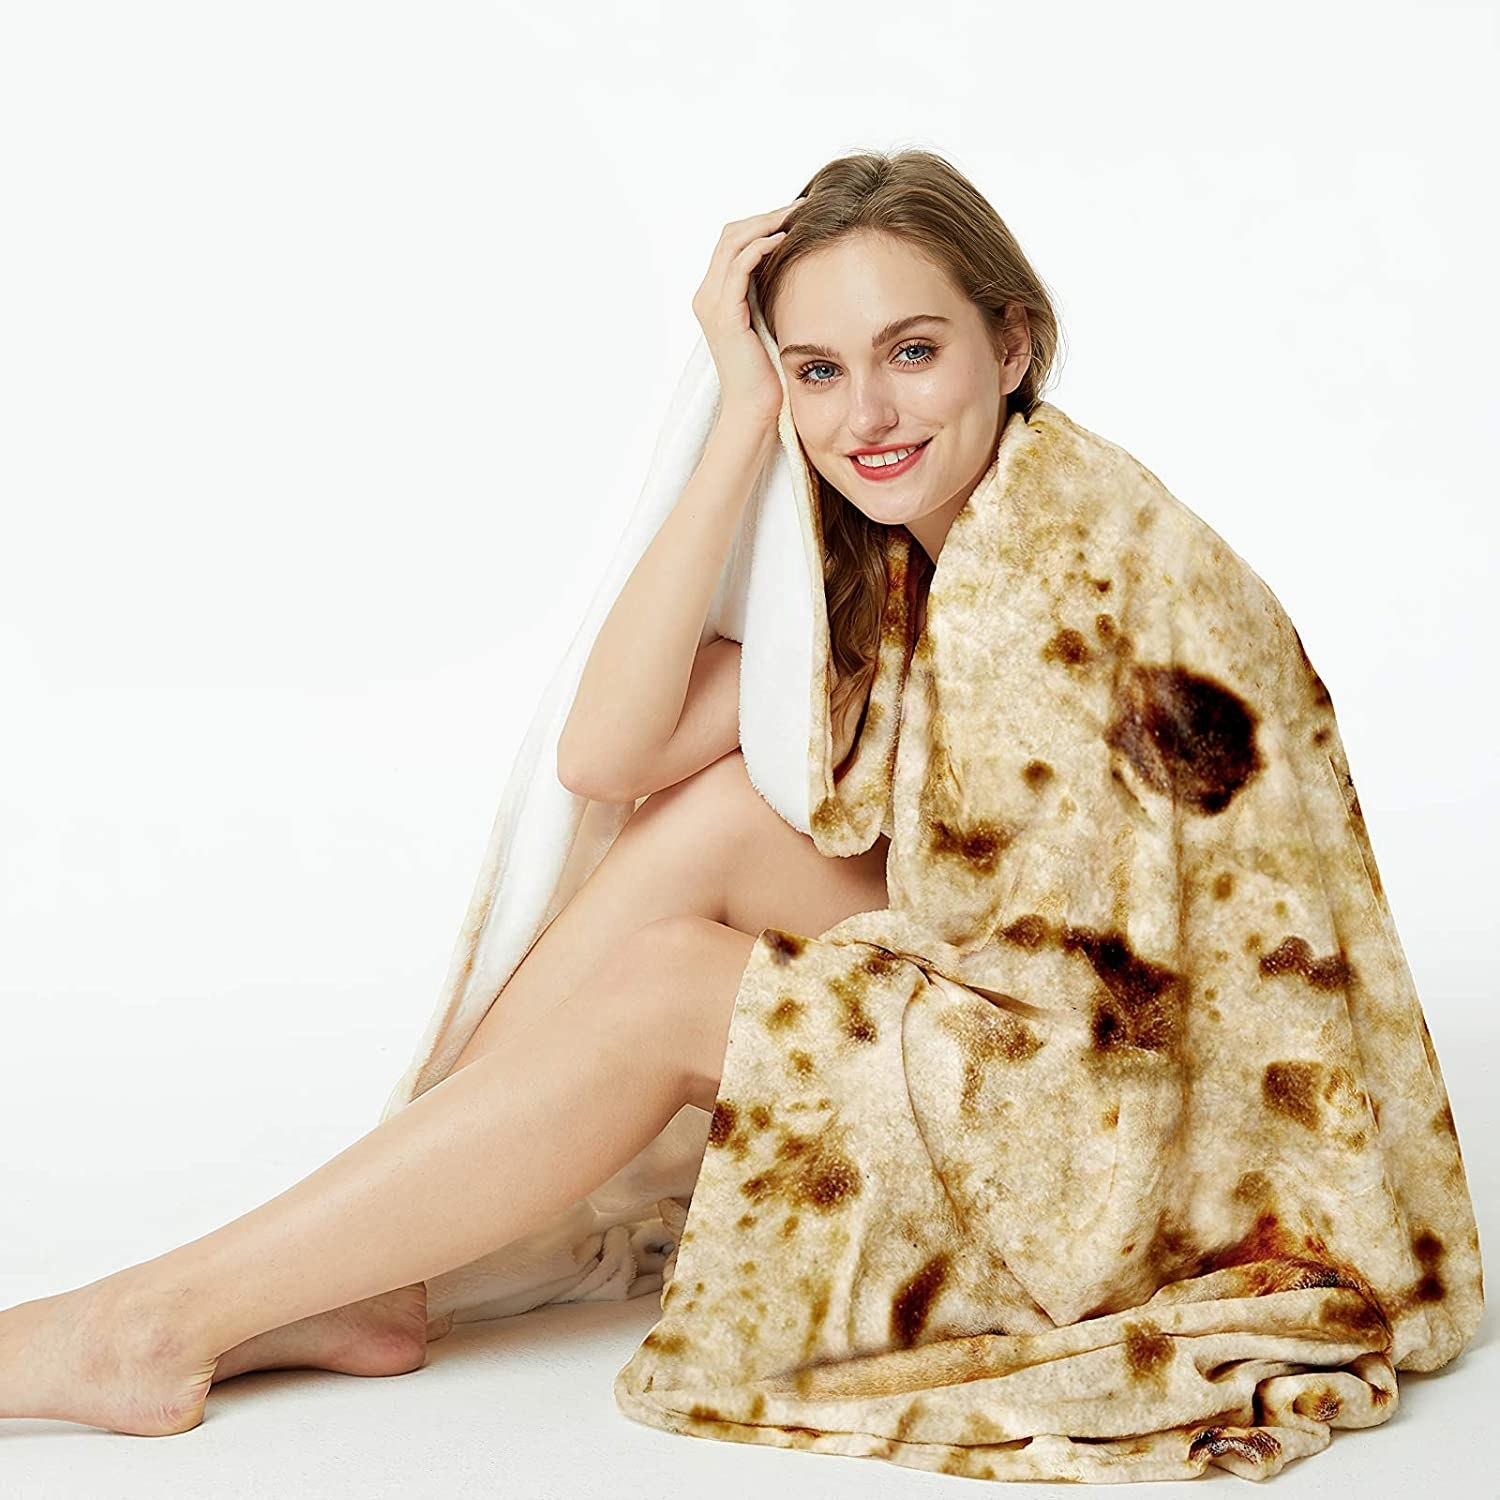 A model in the blanket